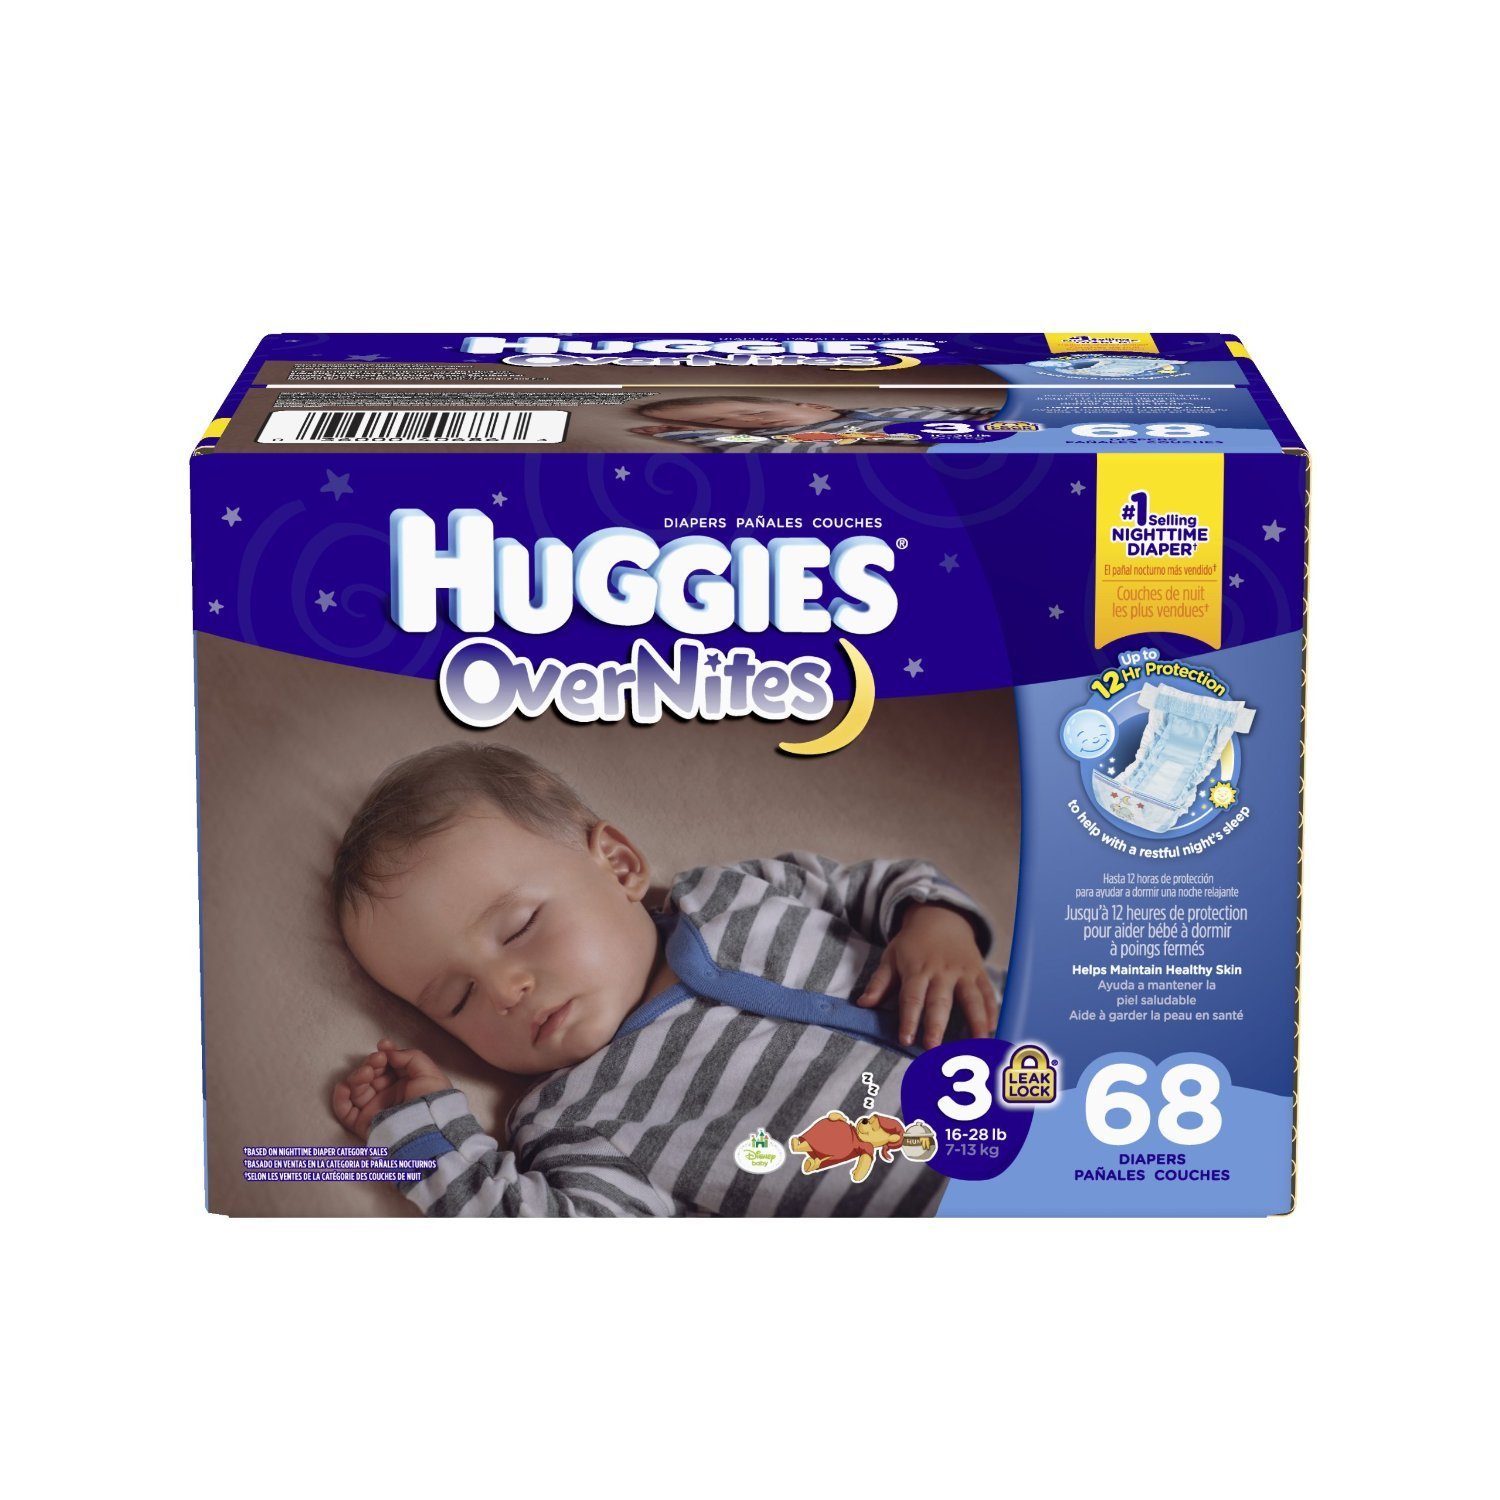 OverNites are the most absorbent HUGGIES diapers and are 25% more absorbent than HUGGIES Snug & Dry Diapers. OverNites are your best choice for nighttime protection. *Nighttime diaper category, based on Nielsen sales data 6/10/ – 6/10/Reviews: K.